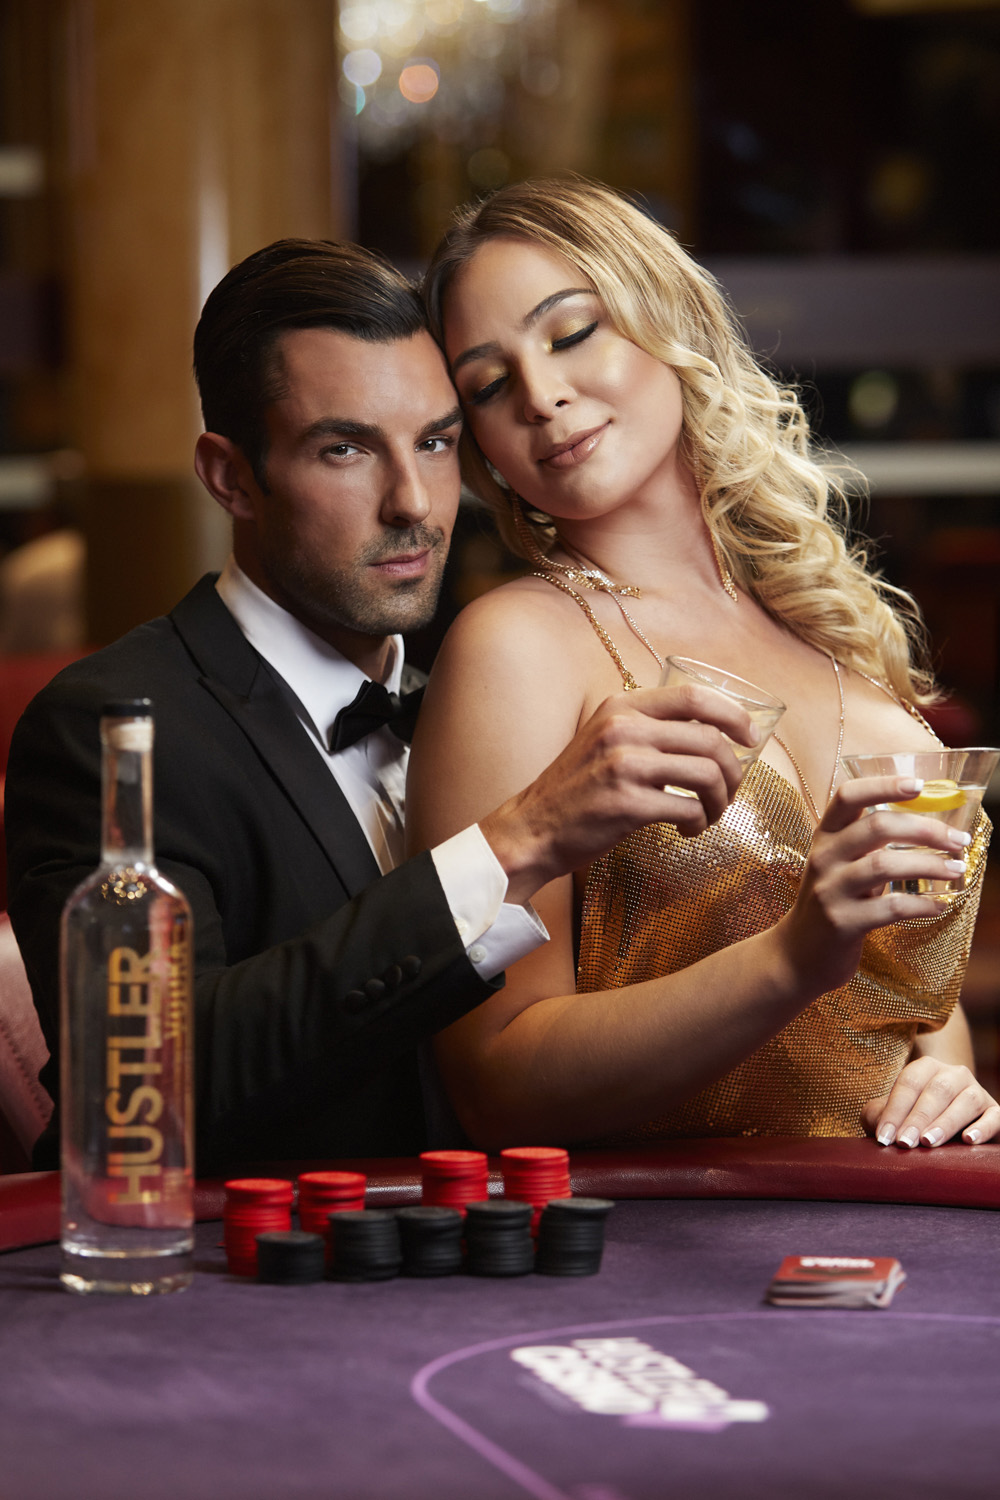 Hustler Vodka Couple